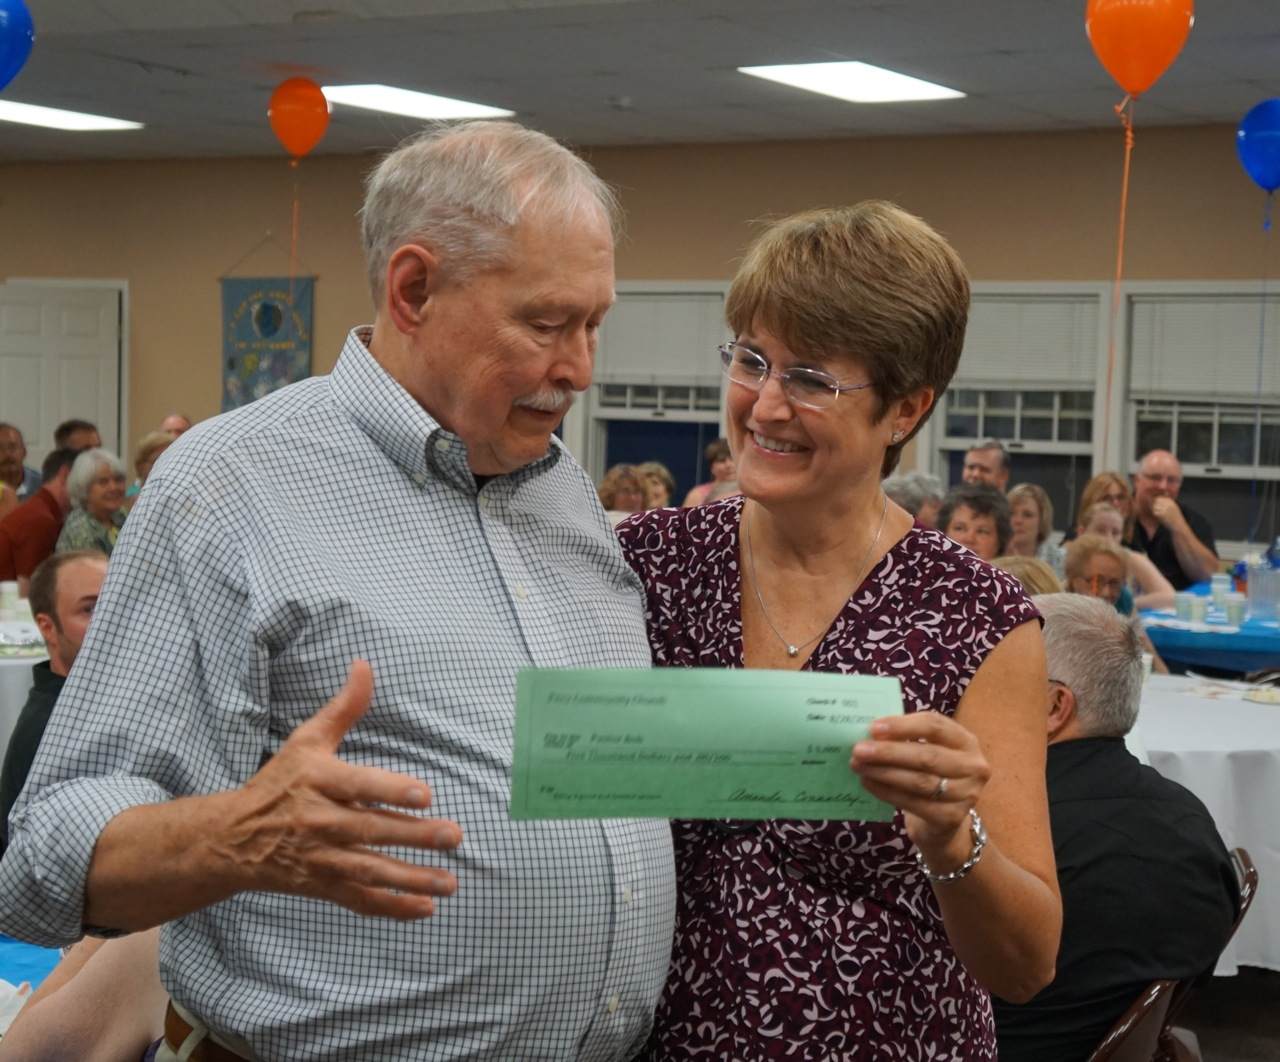 Rev. Svenson receives a parting gift from dinner chair Cindy LaFountain